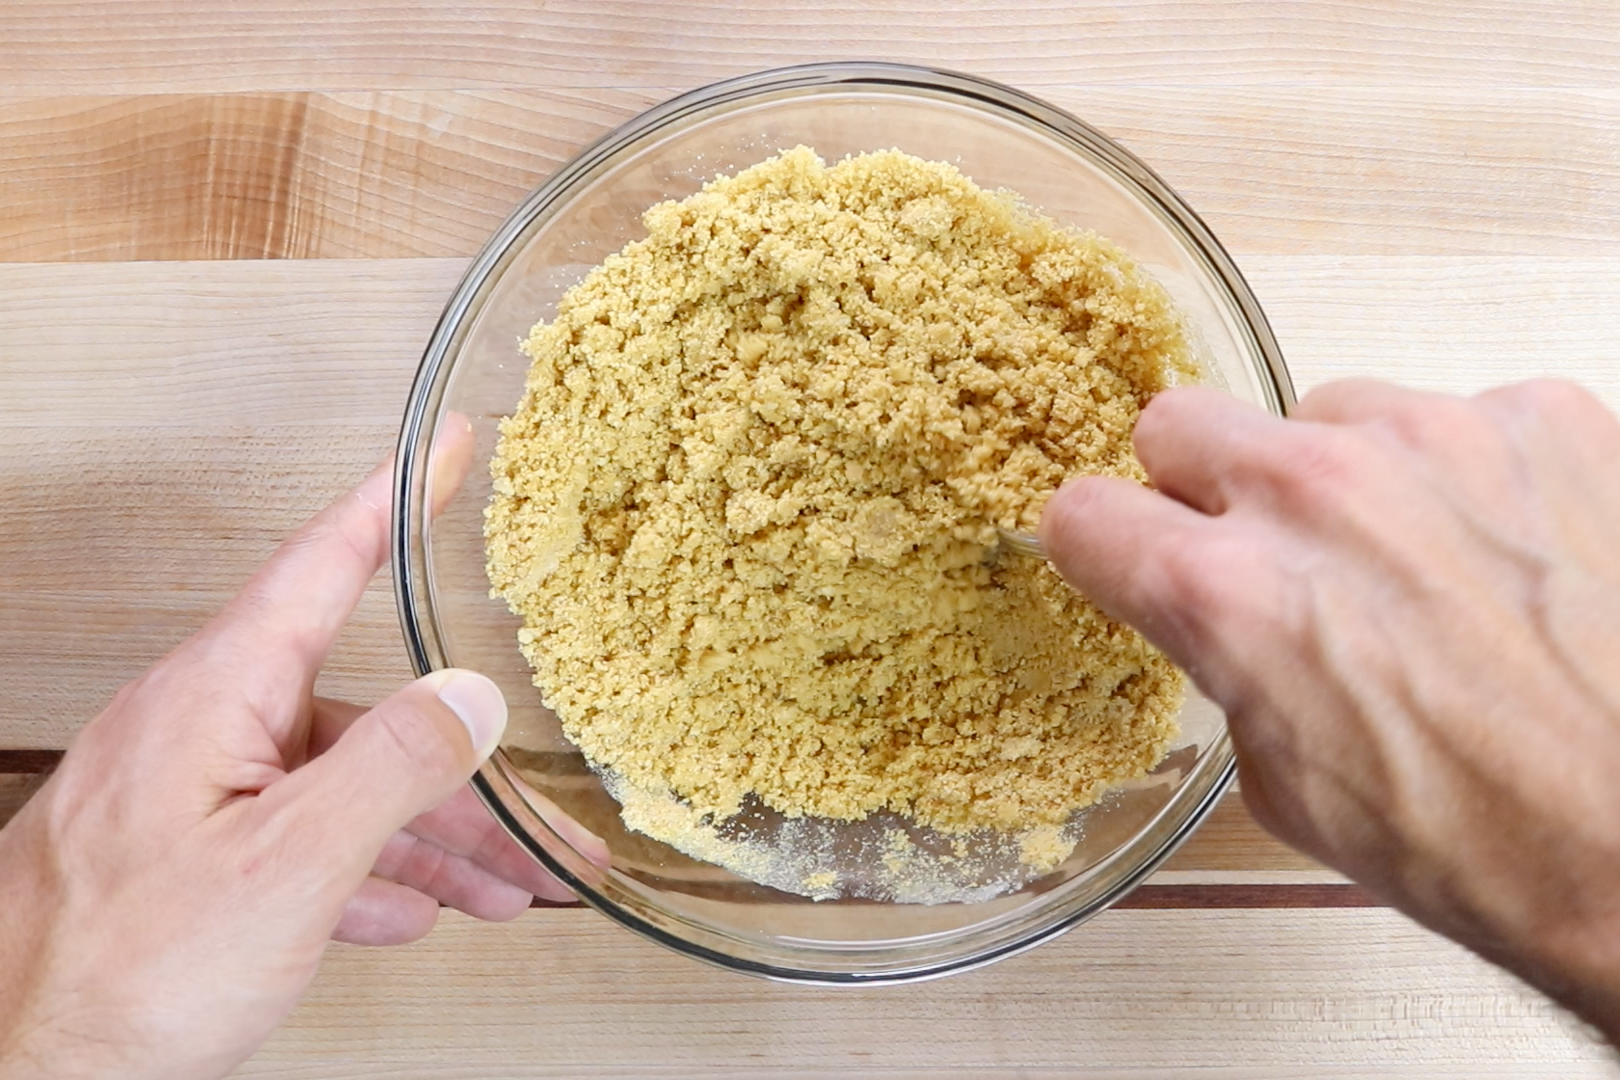 2. Using a food processor or a rolling bin with a Ziploc bag crush the graham crackers into crumbs. Pour into a medium bowl. Add the melted butter and sugar. Mix until combined and has the consistency of wet sand. -